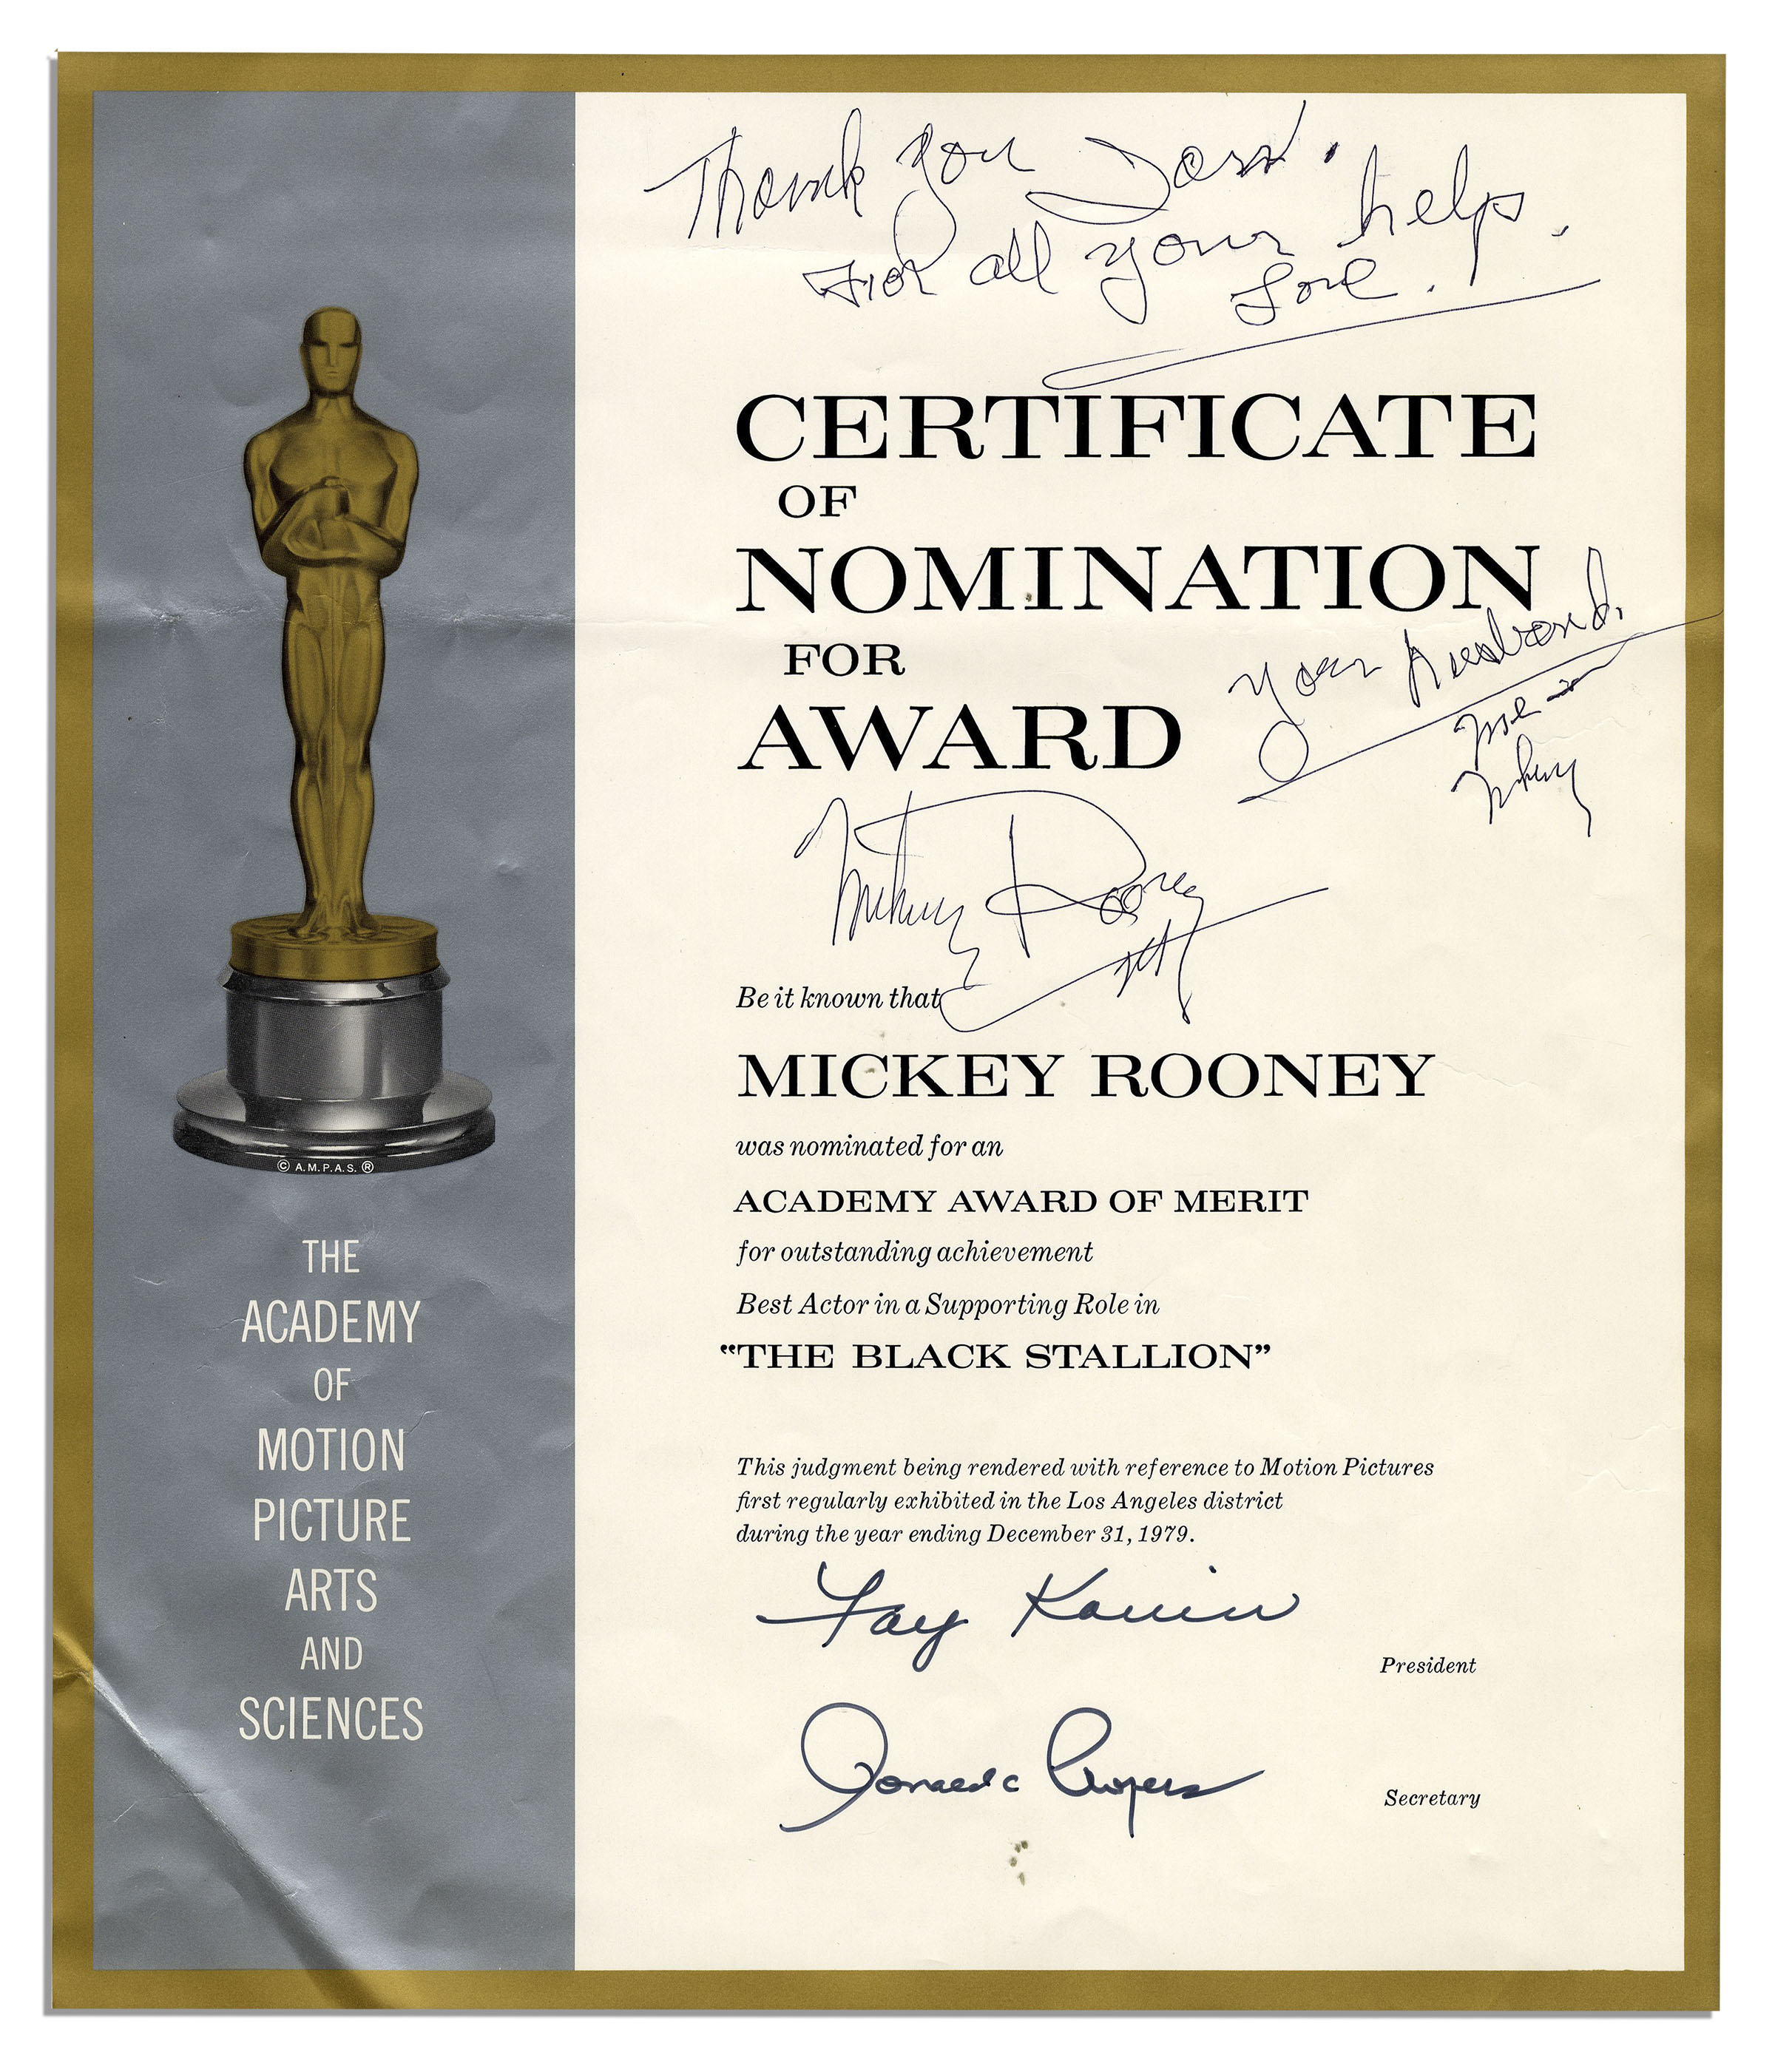 Mickey rooney official oscar nomination for best actor in a supporting